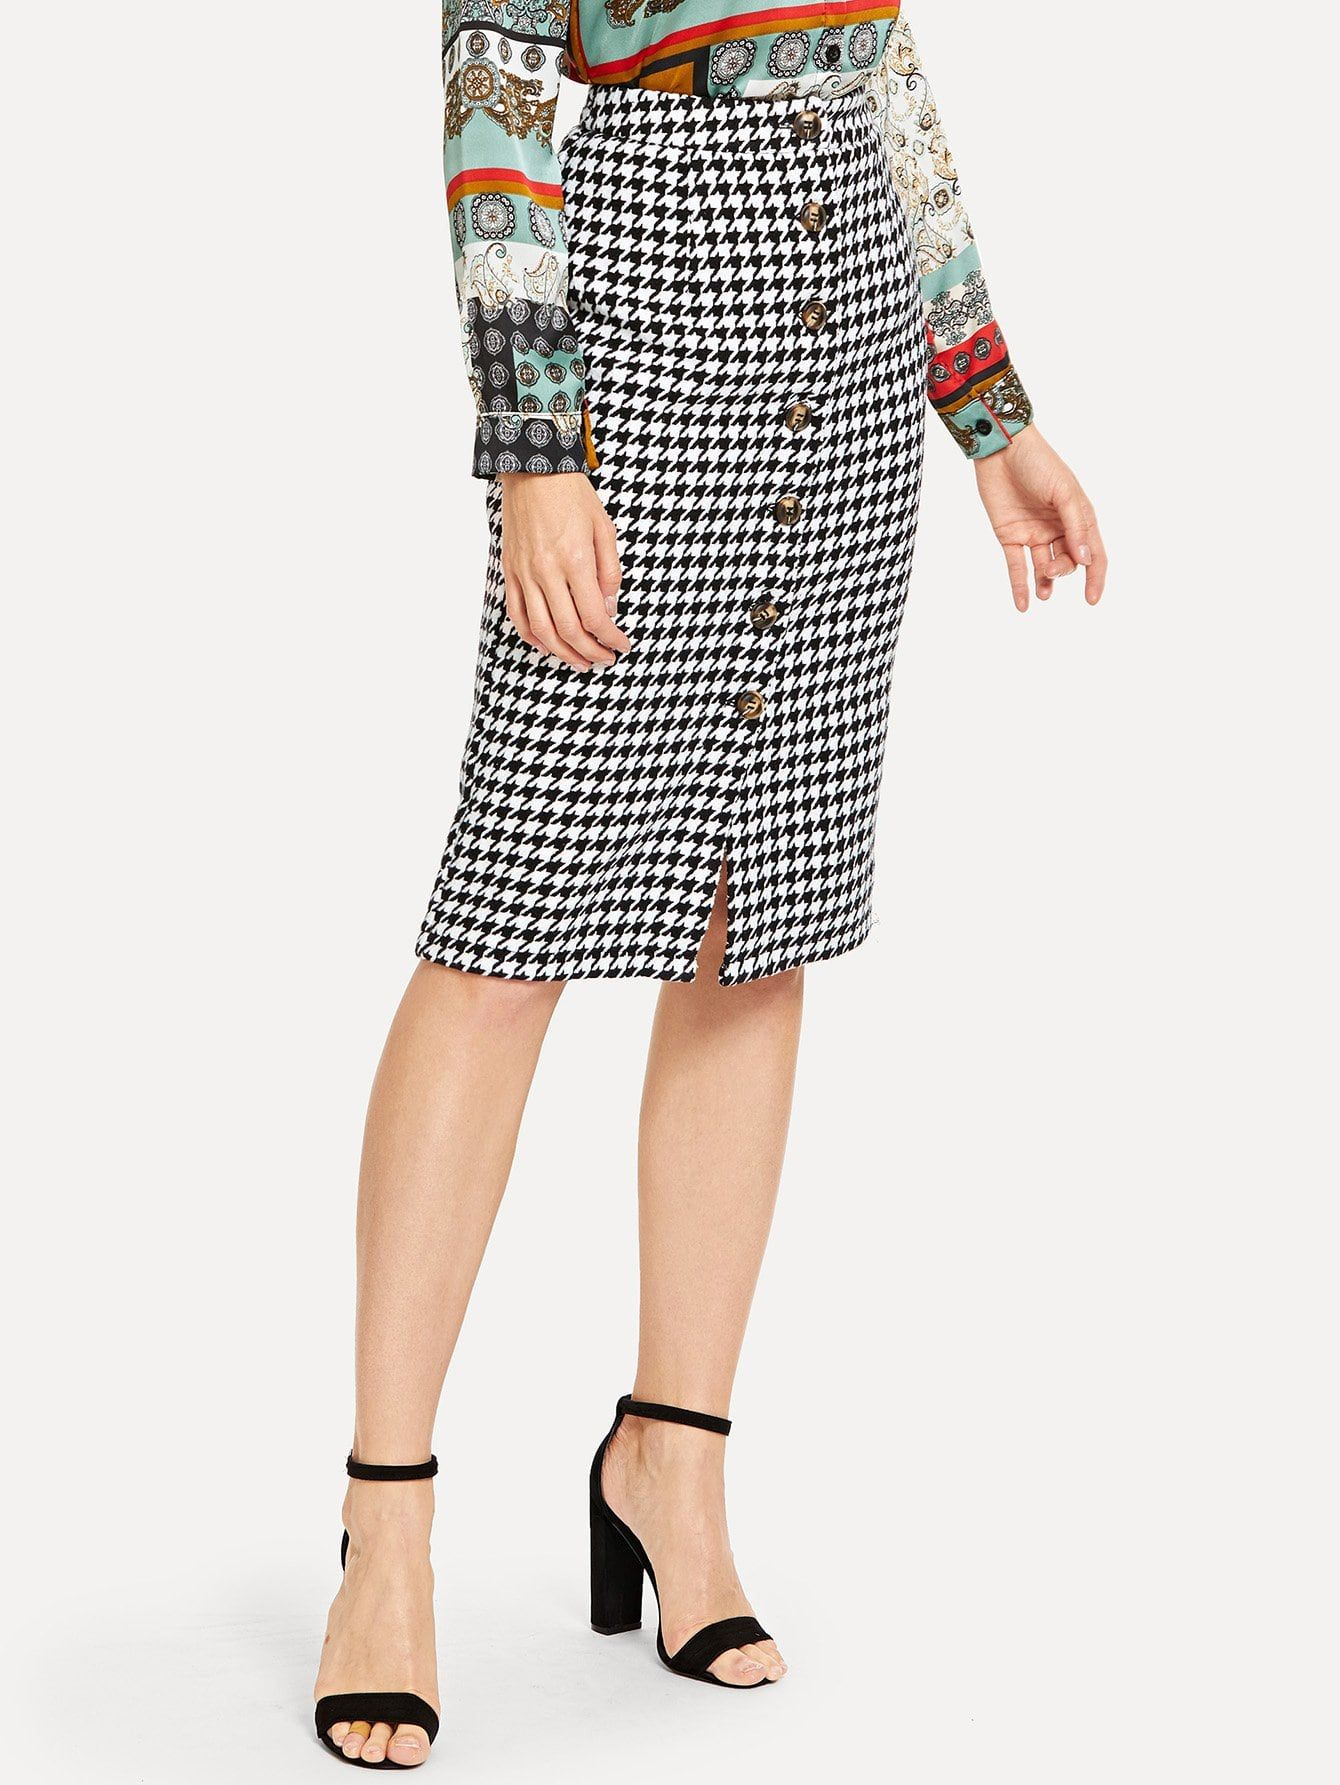 f574e398b40 Elegant Pencil Button Houndstooth Sheath High Waist Black and White Knee  Length Button Up Houndstooth Skirt